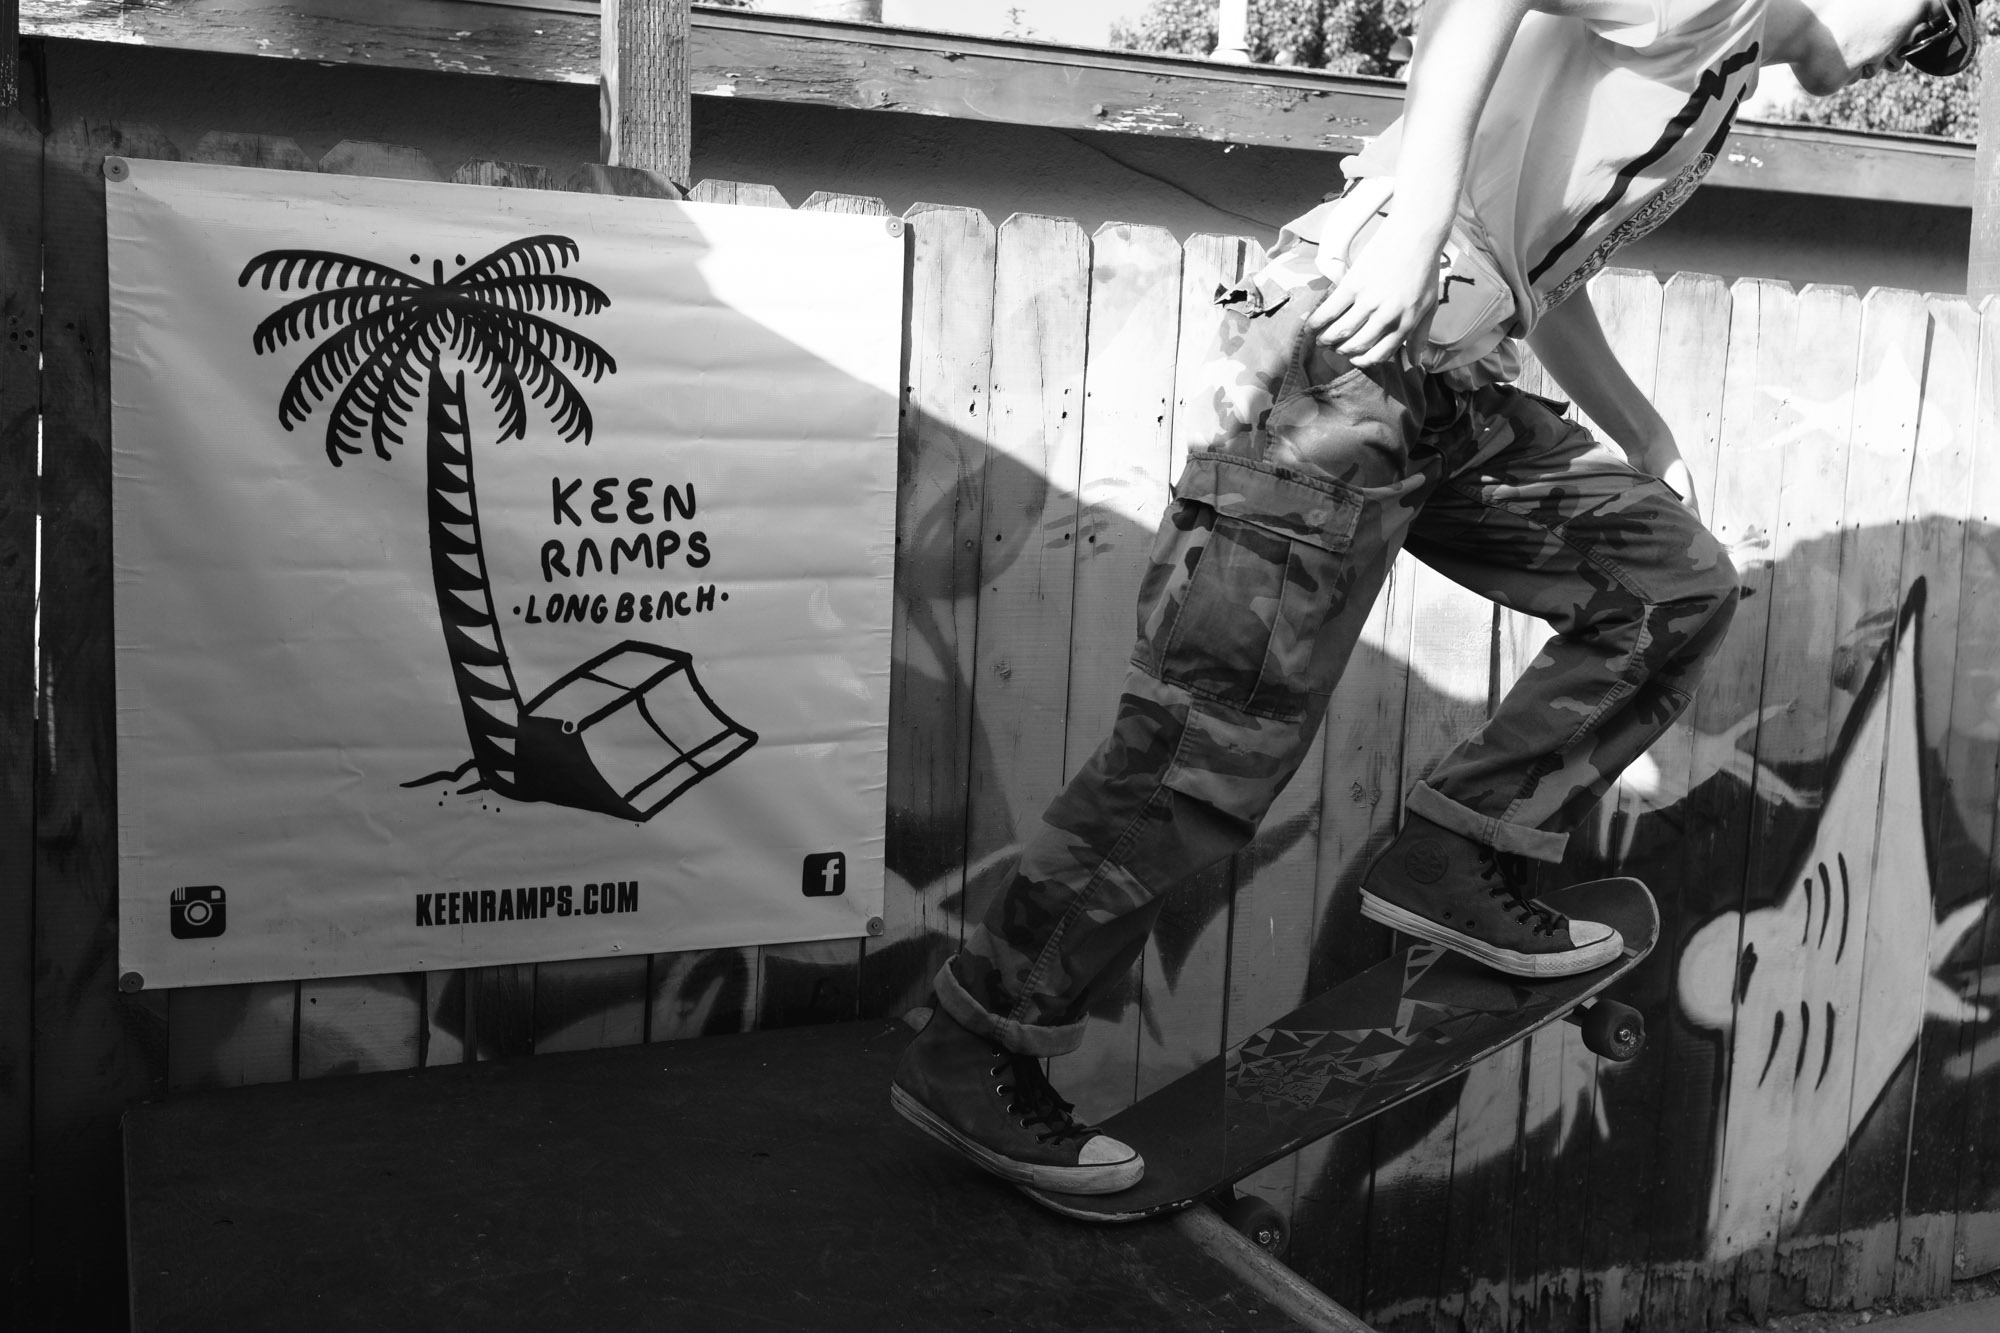 Keen ramps banner displayed on a miniramp